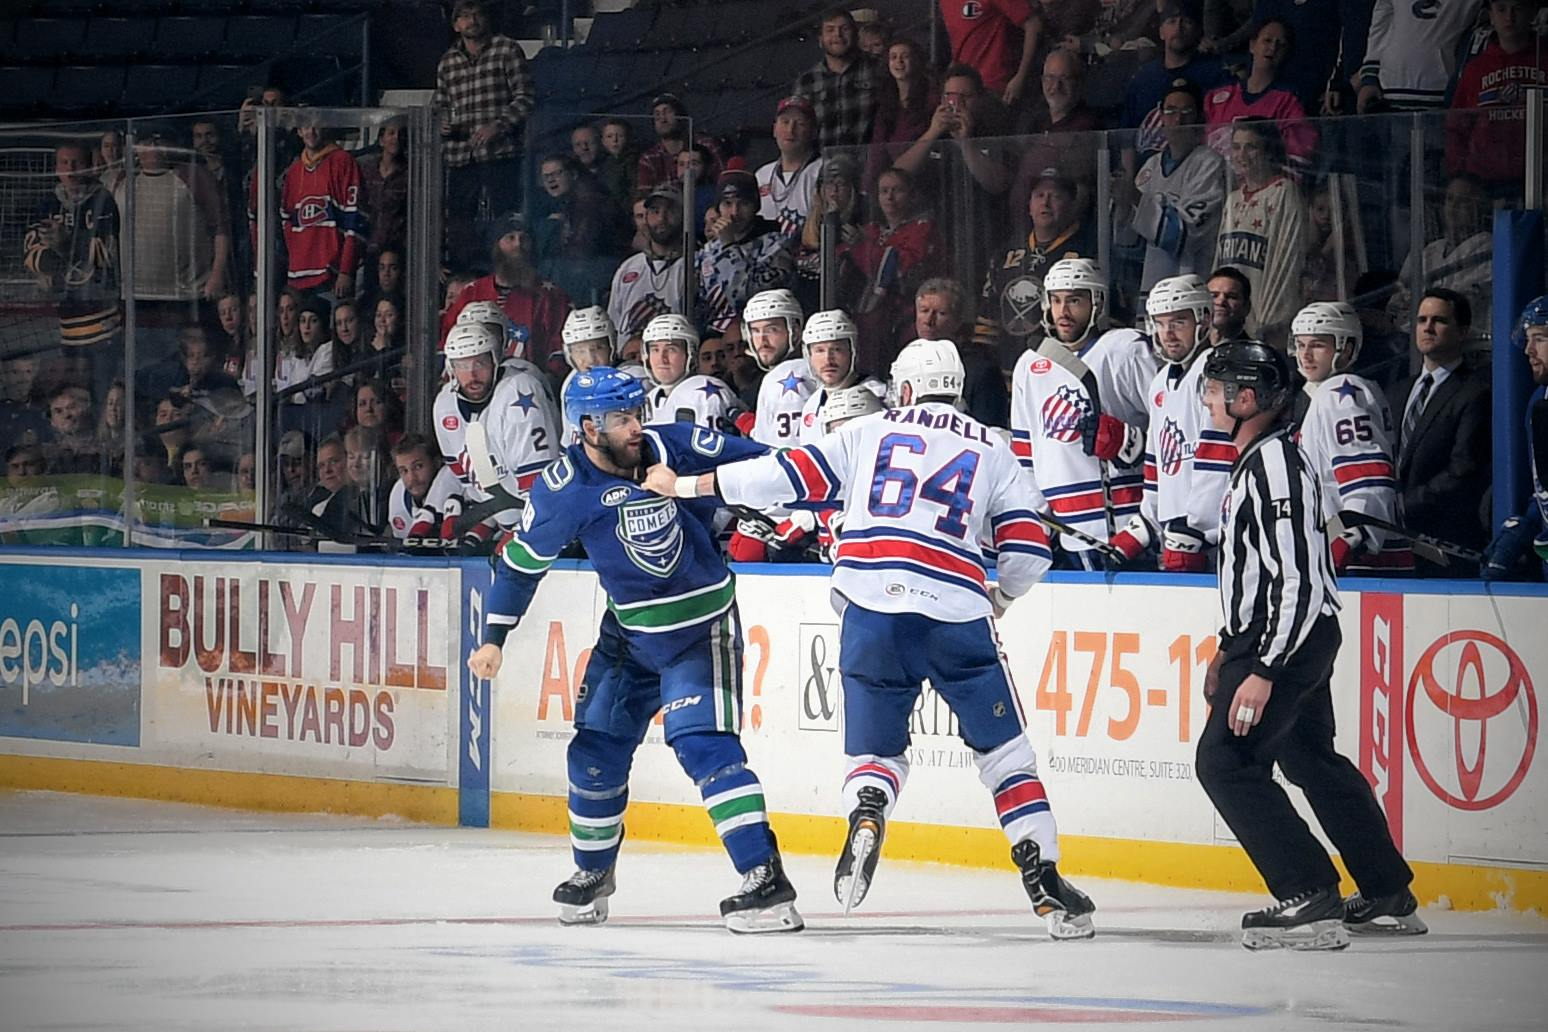 Comets were Smoked by the Shot Blocking Amerks